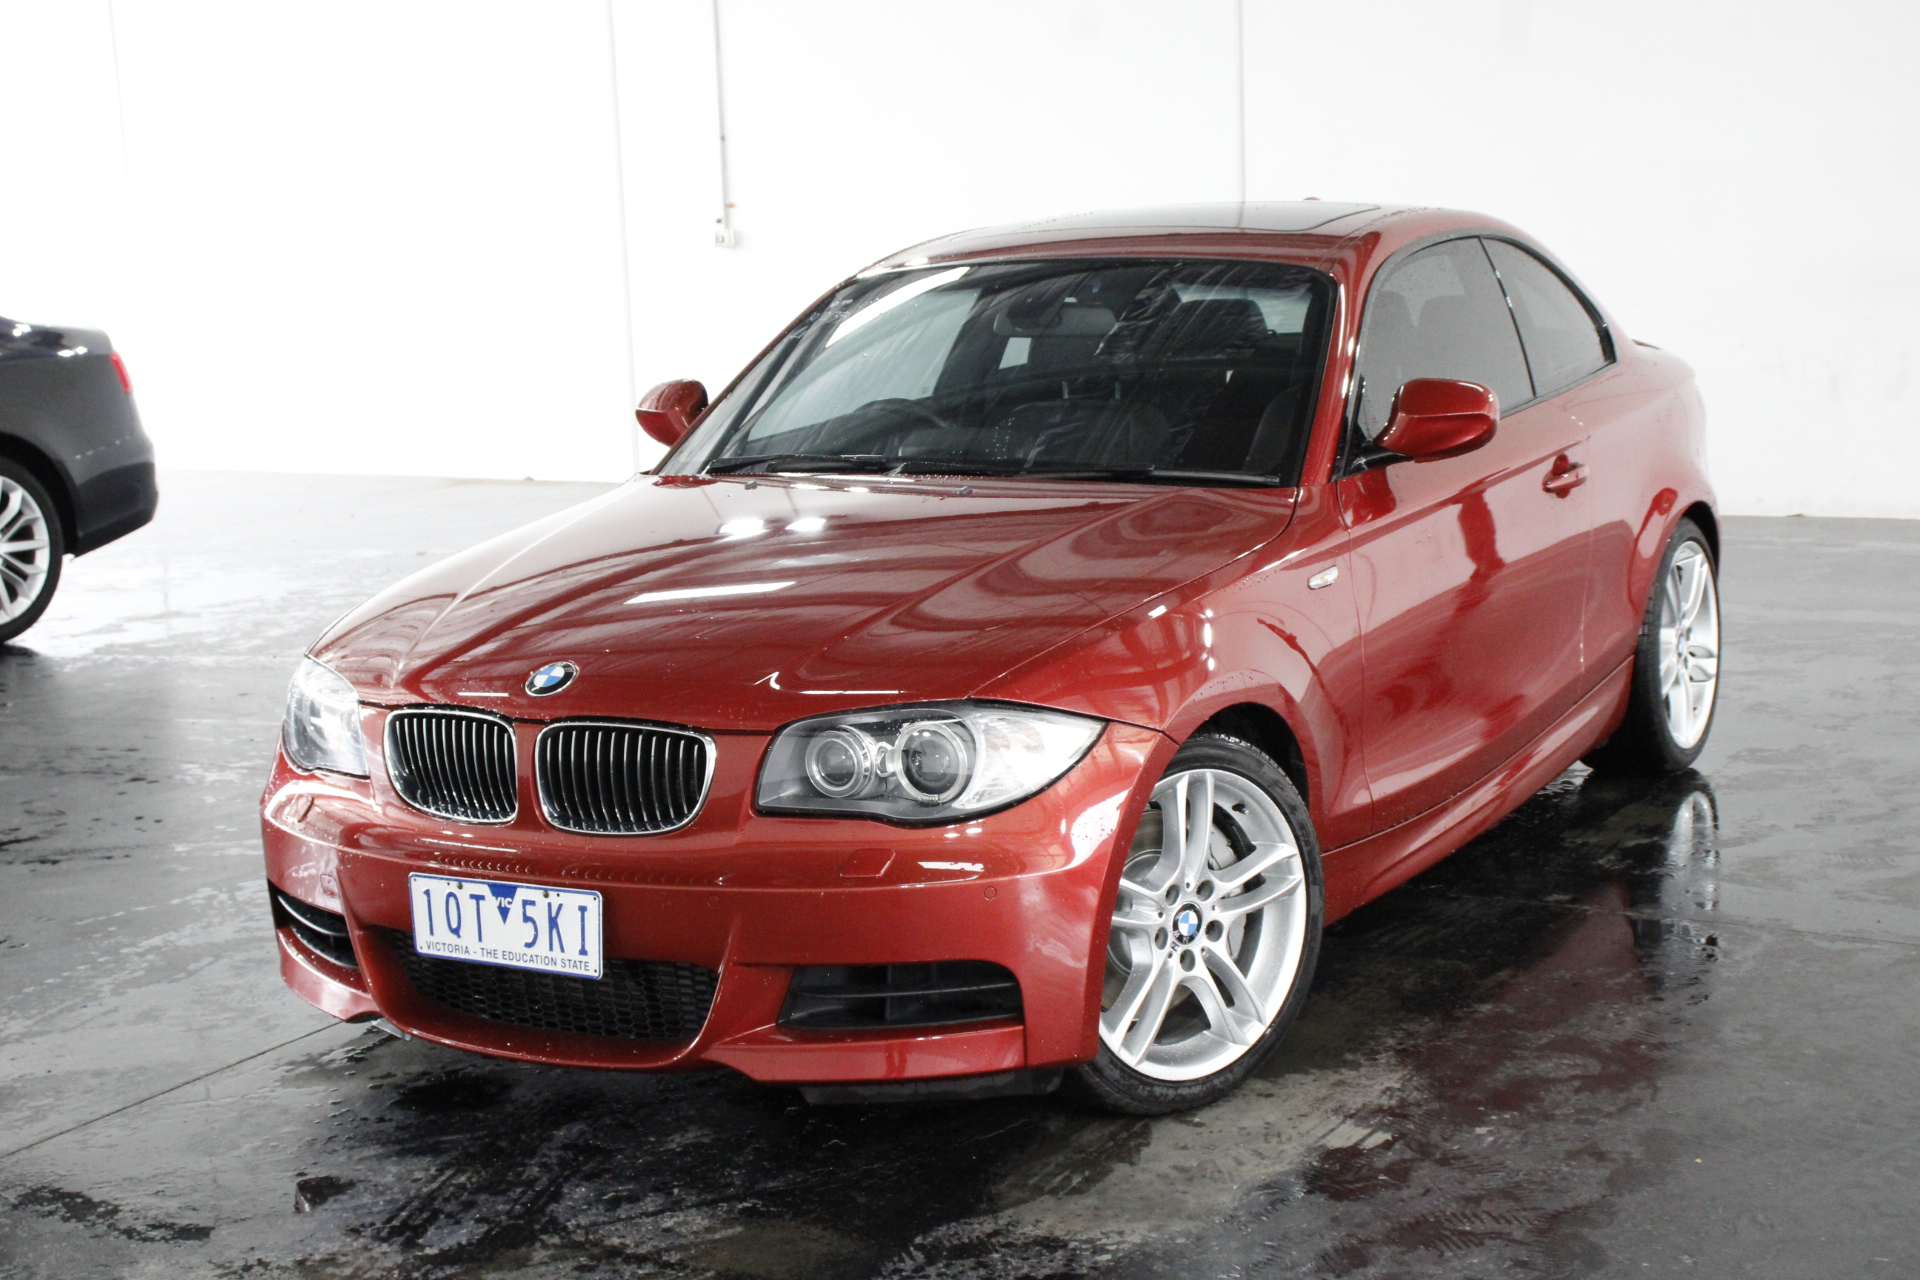 2011 BMW 1 SERIES COUPE 135i M SPORT Auto Coupe RWC issued 06/02/2020